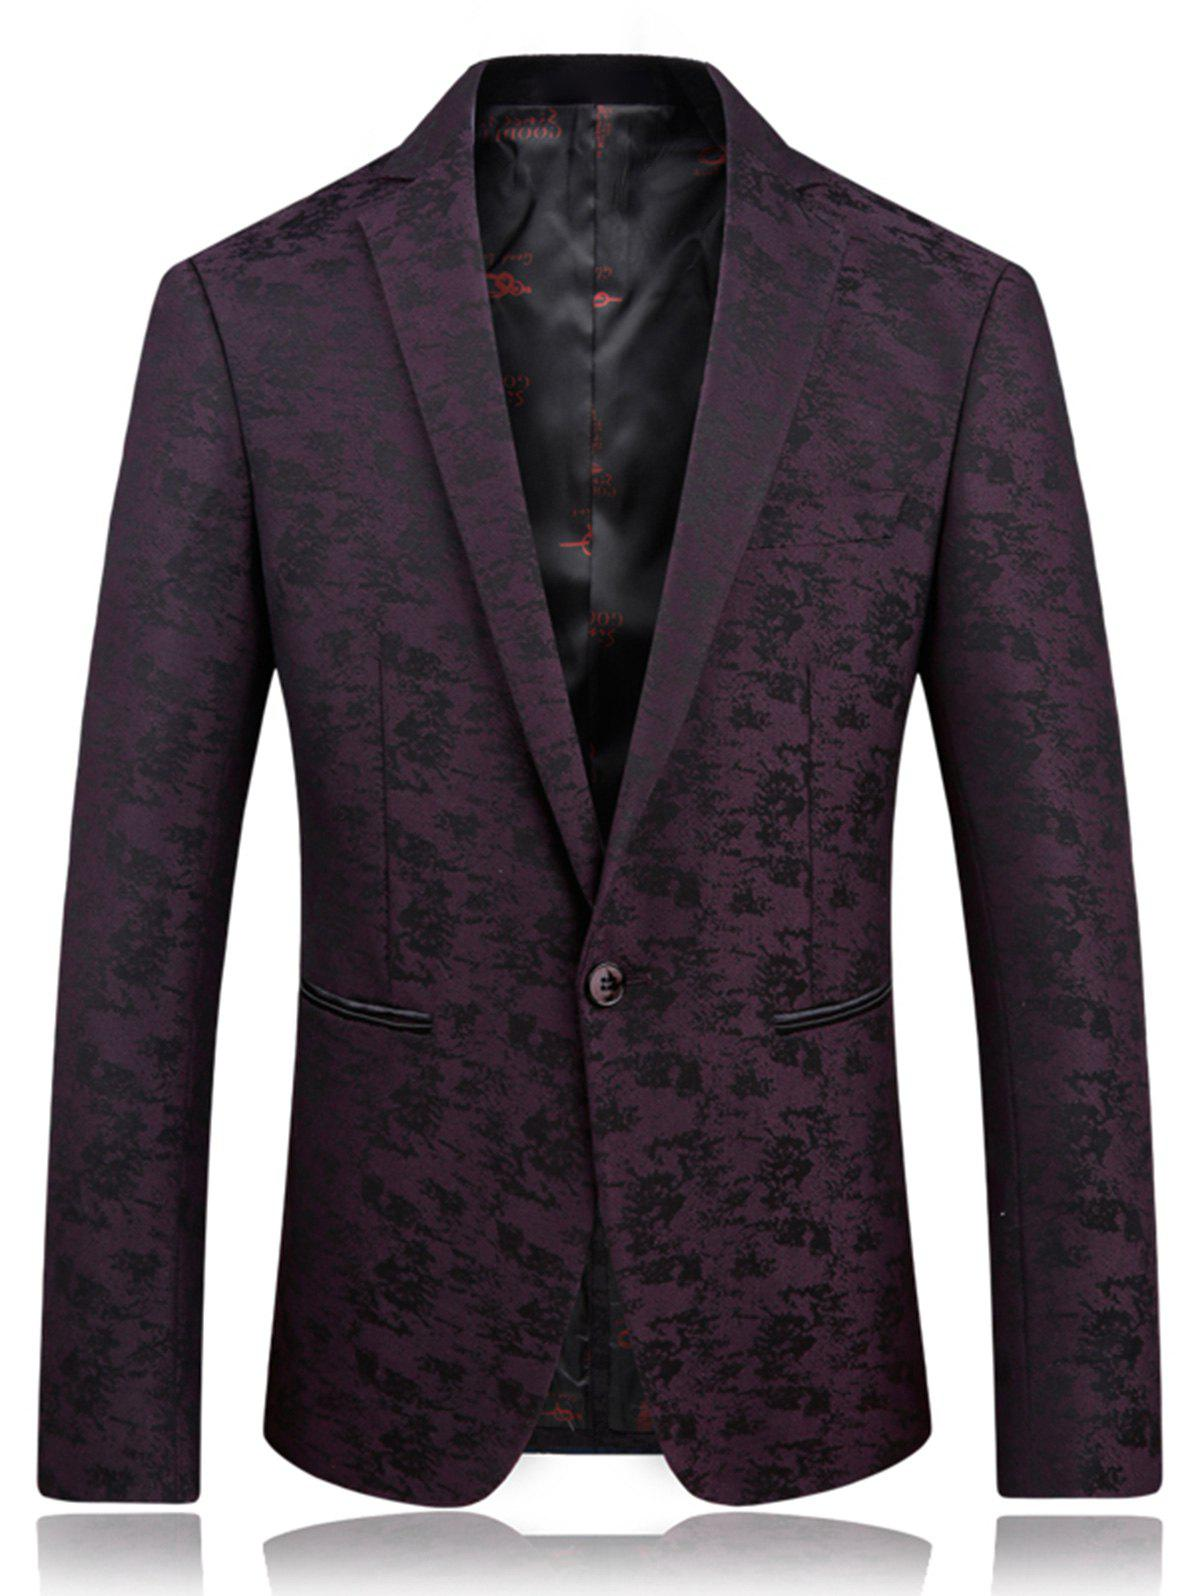 Lapel Jacquard Edging One Button Blazer - Violacé rouge 3XL